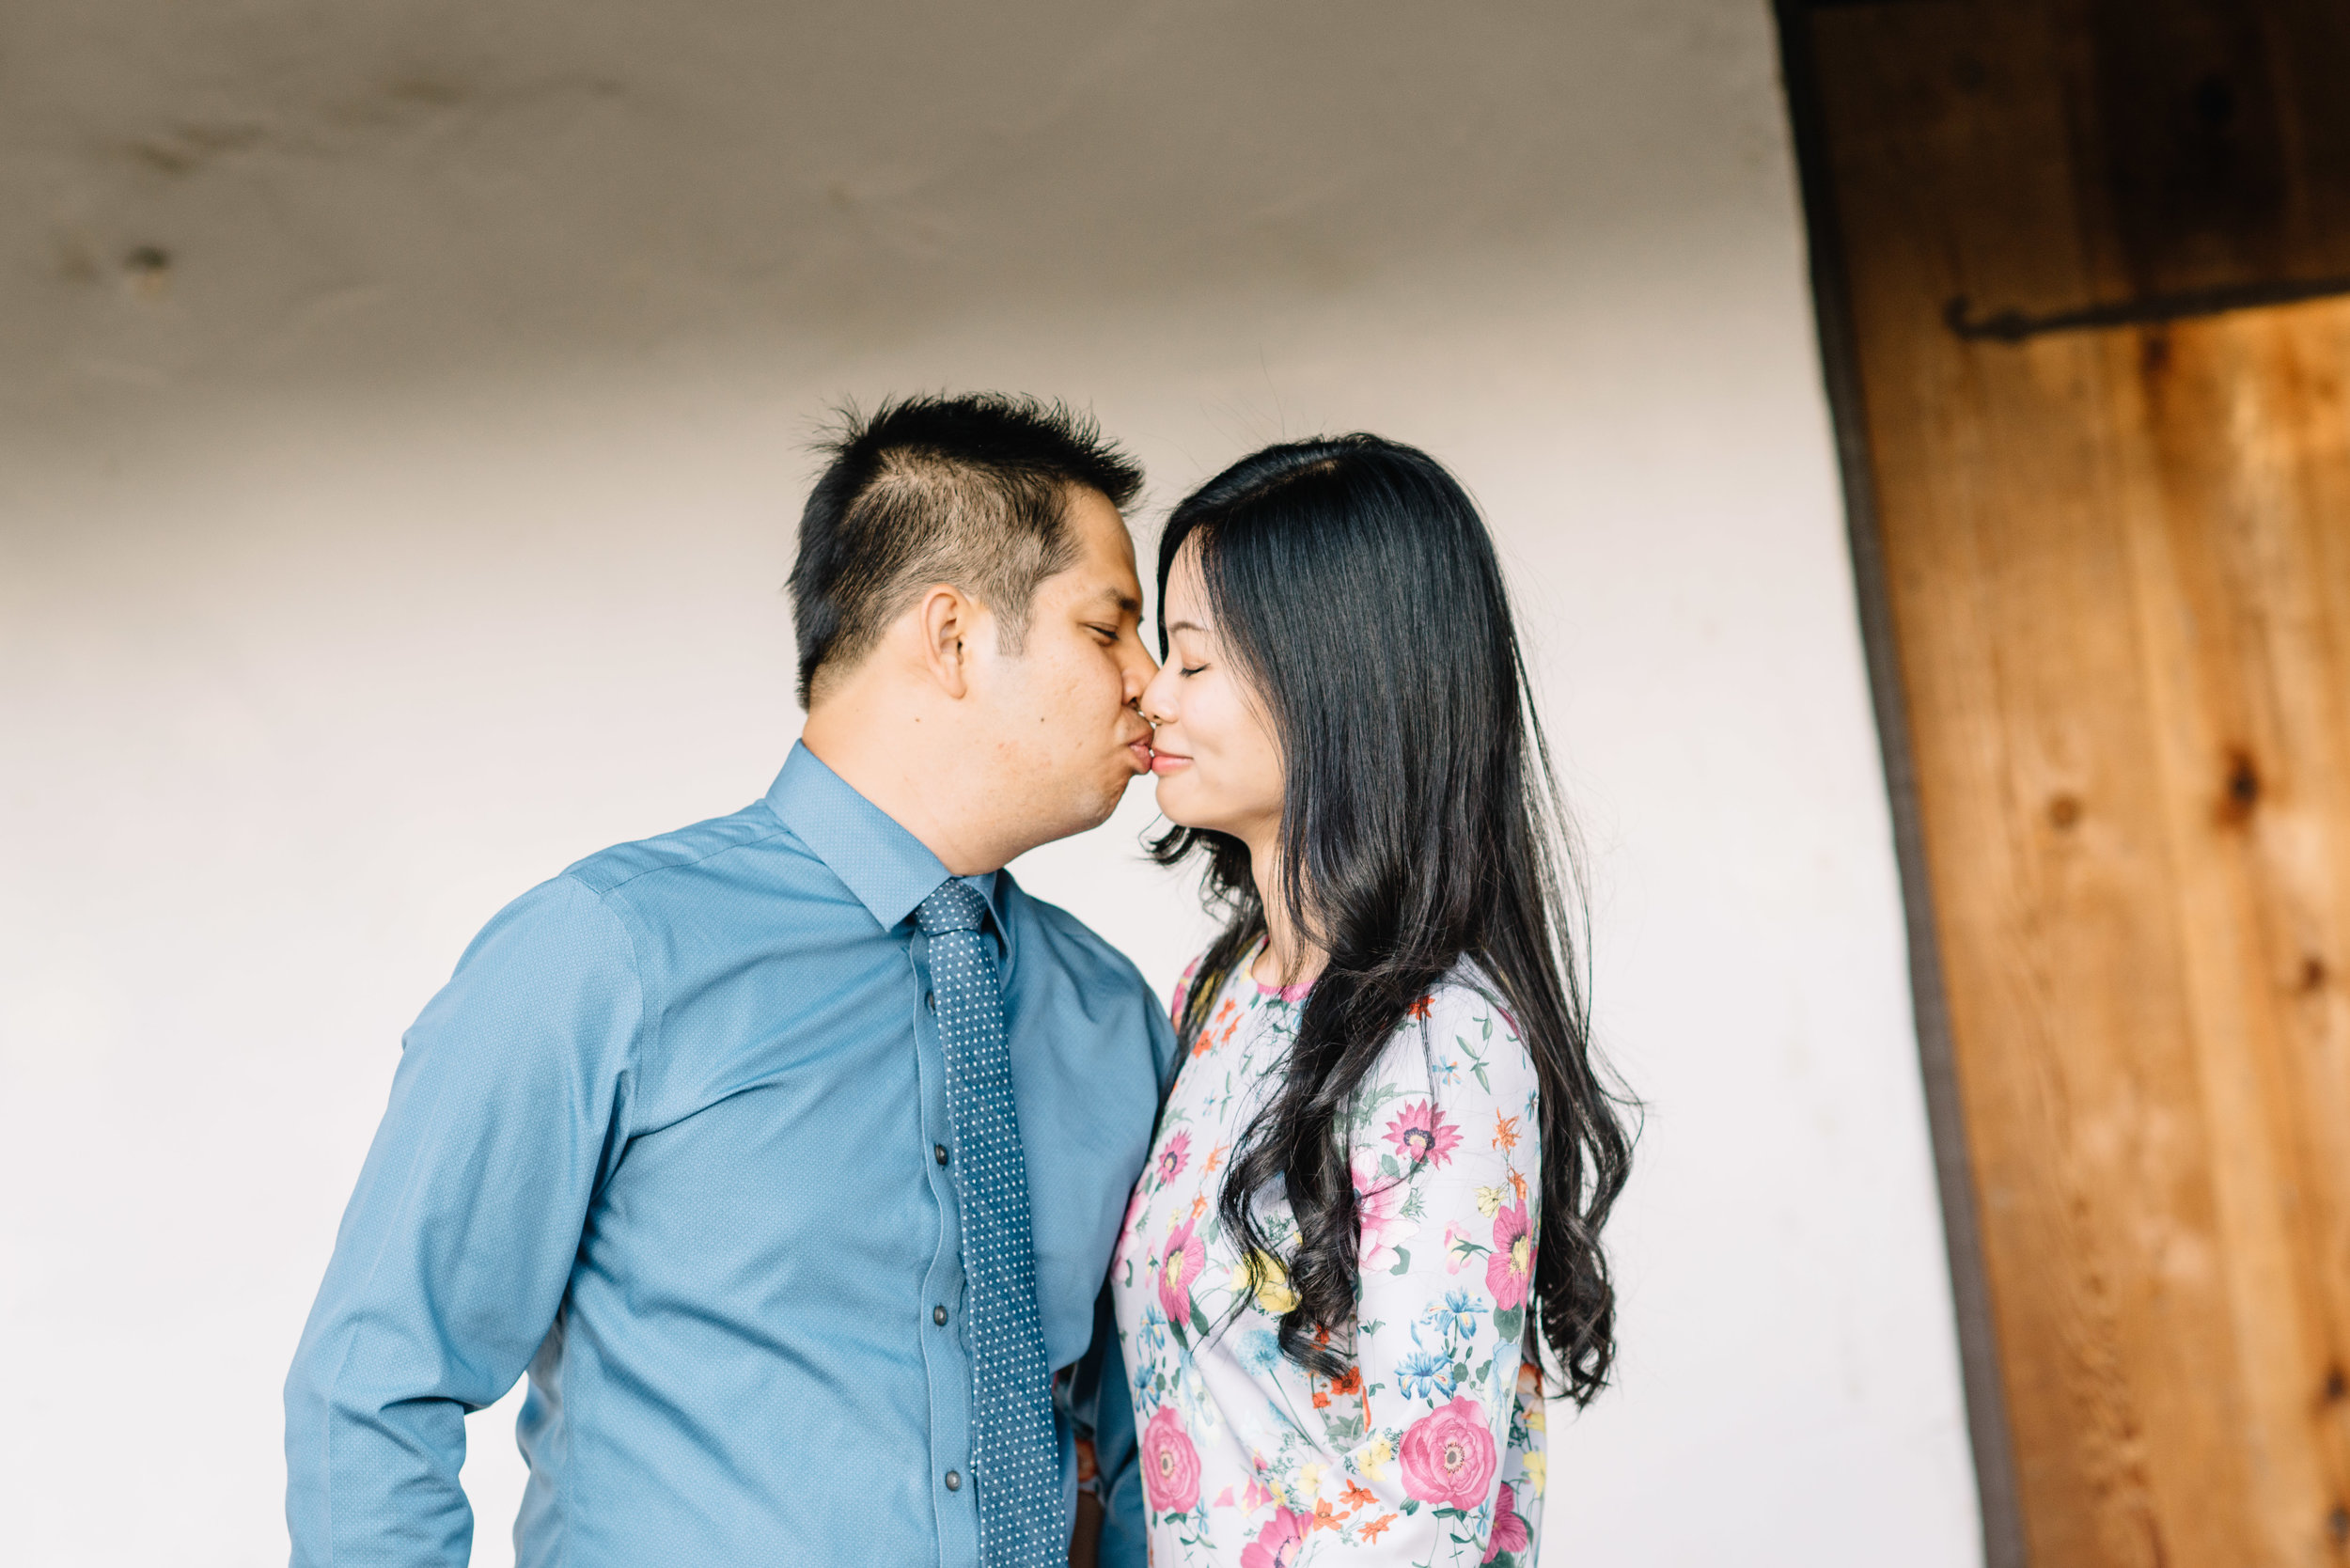 jennifer-jayn-photography-san-juan-capistrano-engagement-session-14.jpg